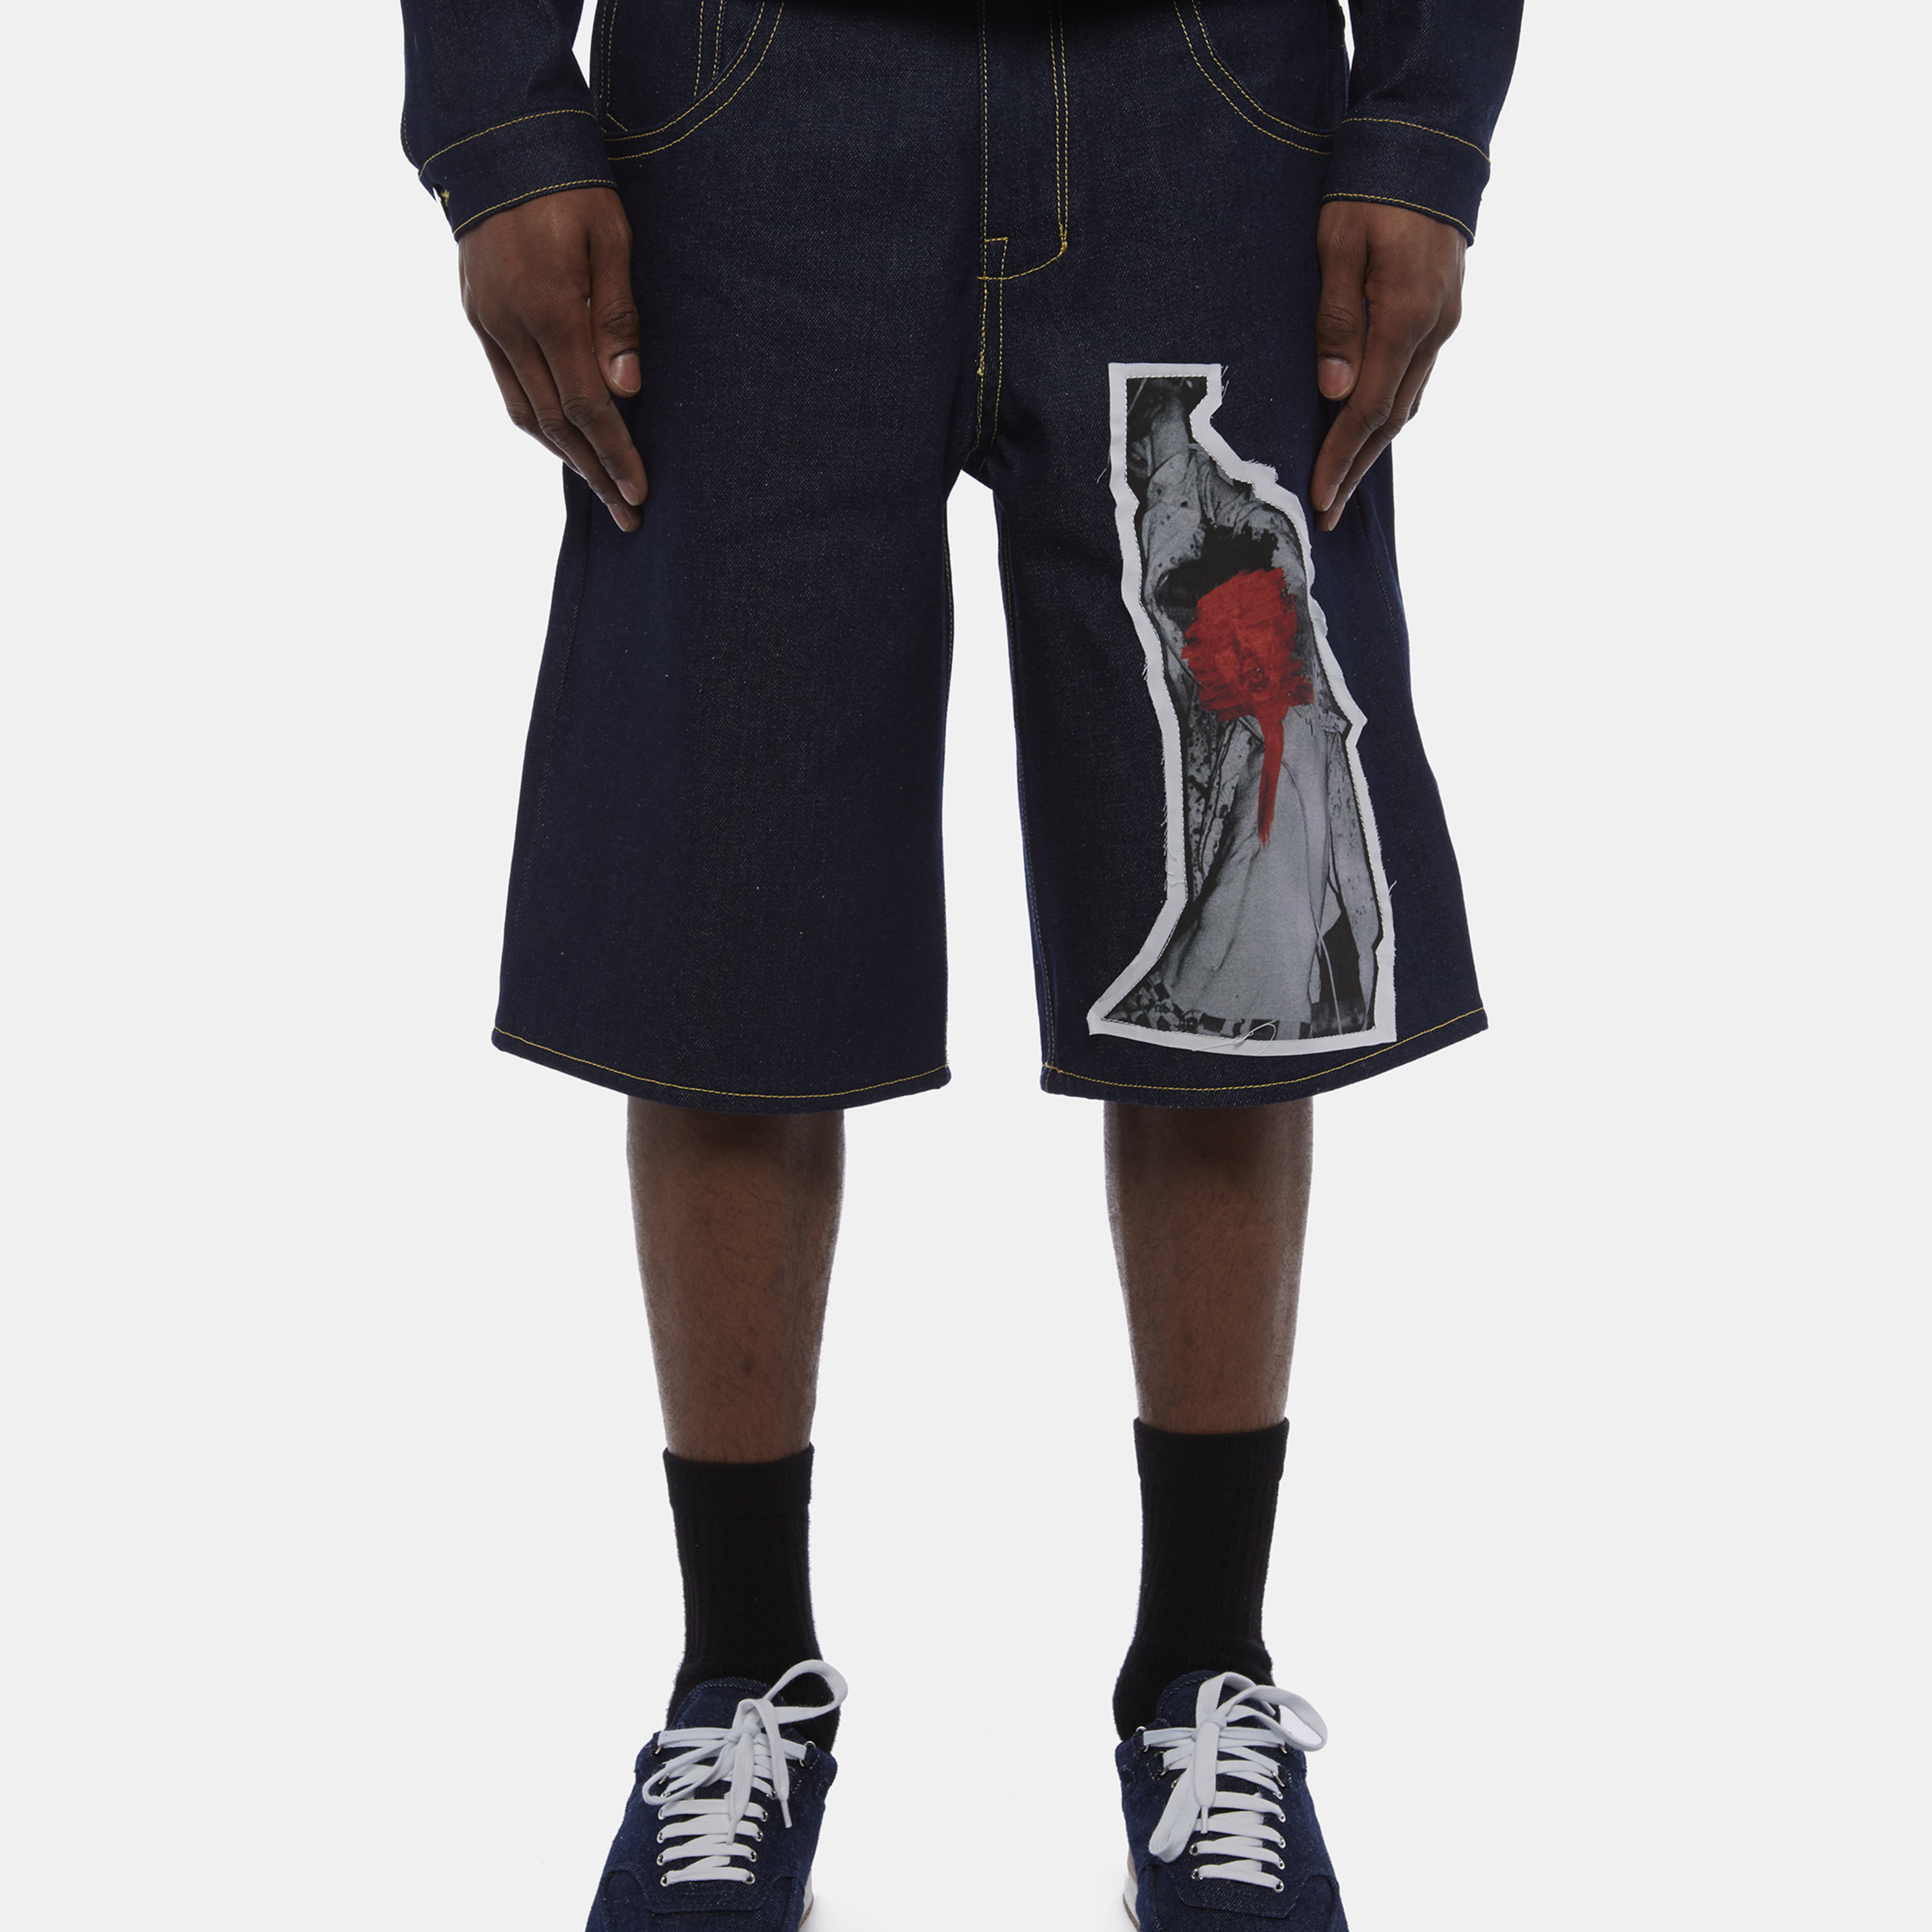 Chris With Male Lyst Shorts O'carroll Poster In Black Denim Print QsdxthrCB